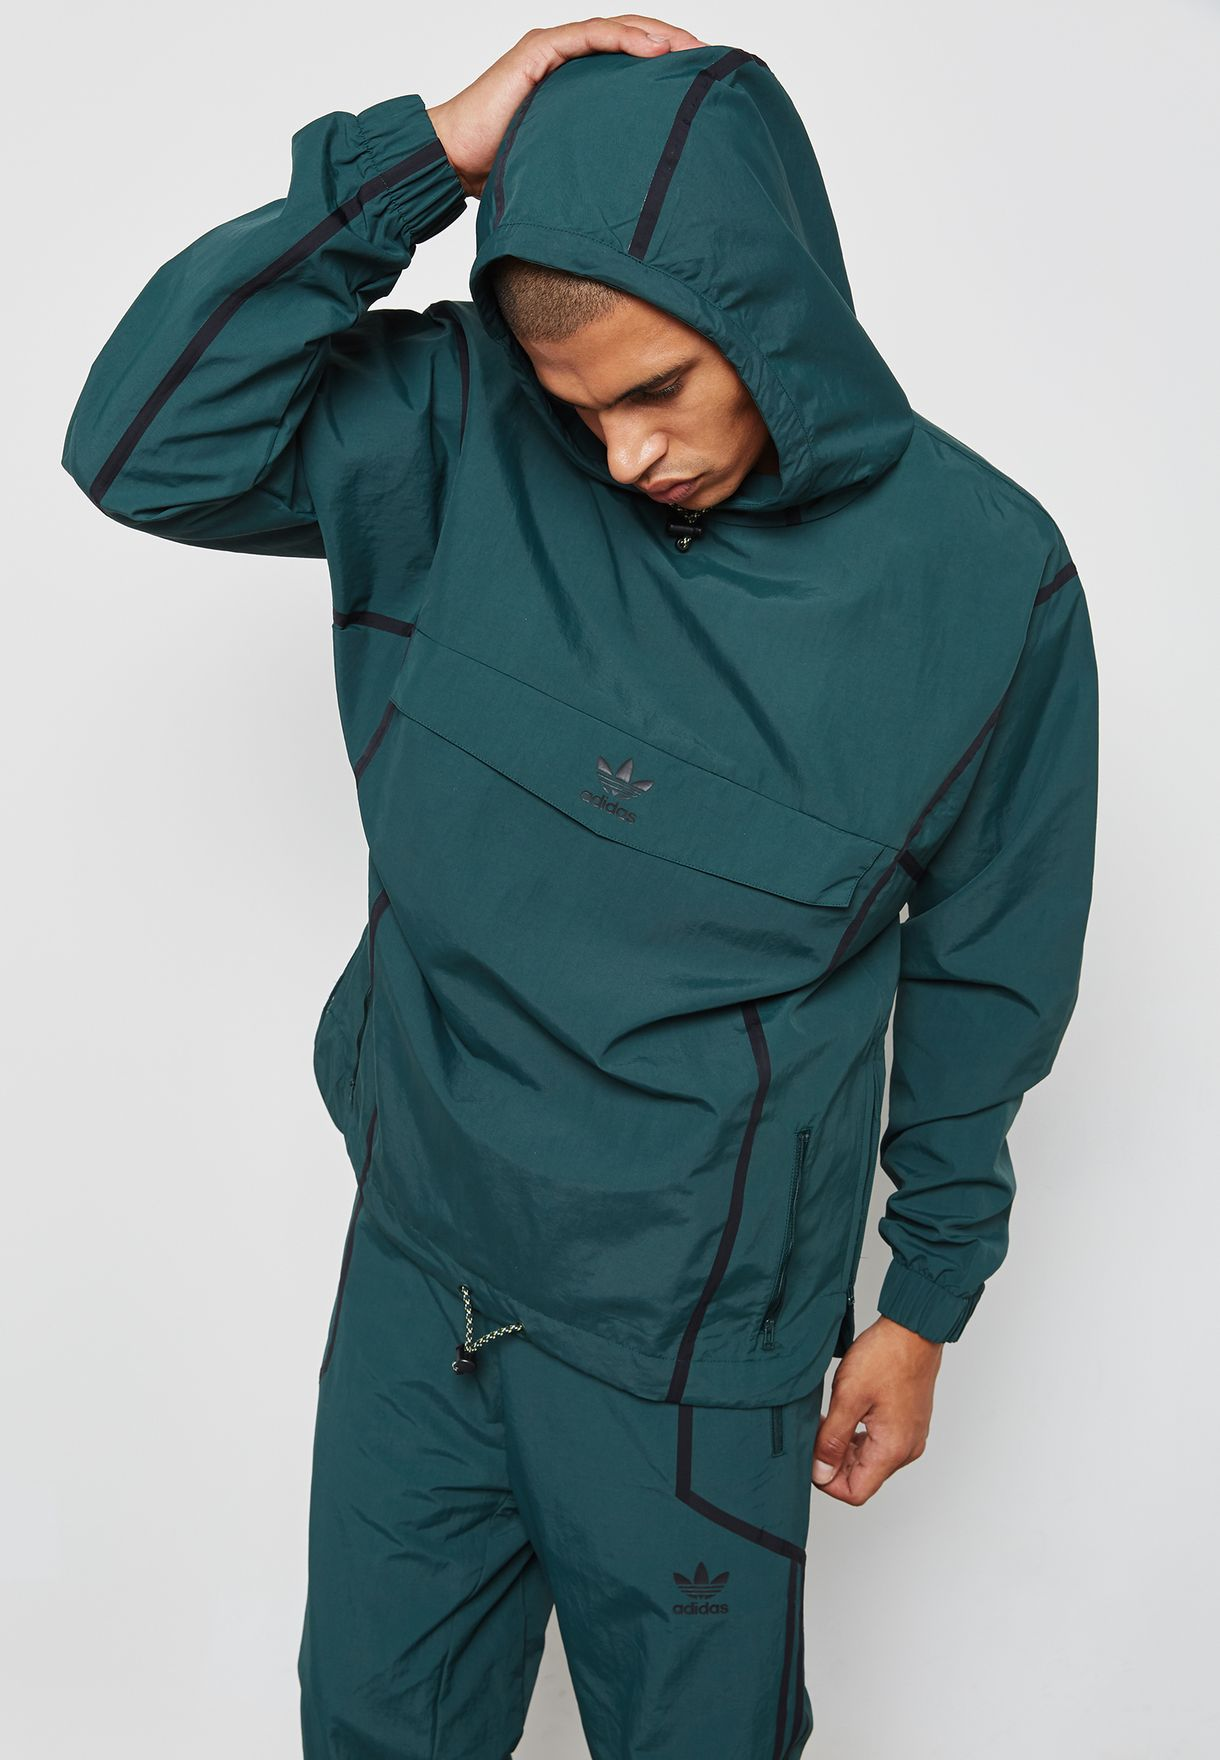 9e5d902ae3bb Shop adidas Originals green Taped Anorak Jacket BR5077 for Men in ...